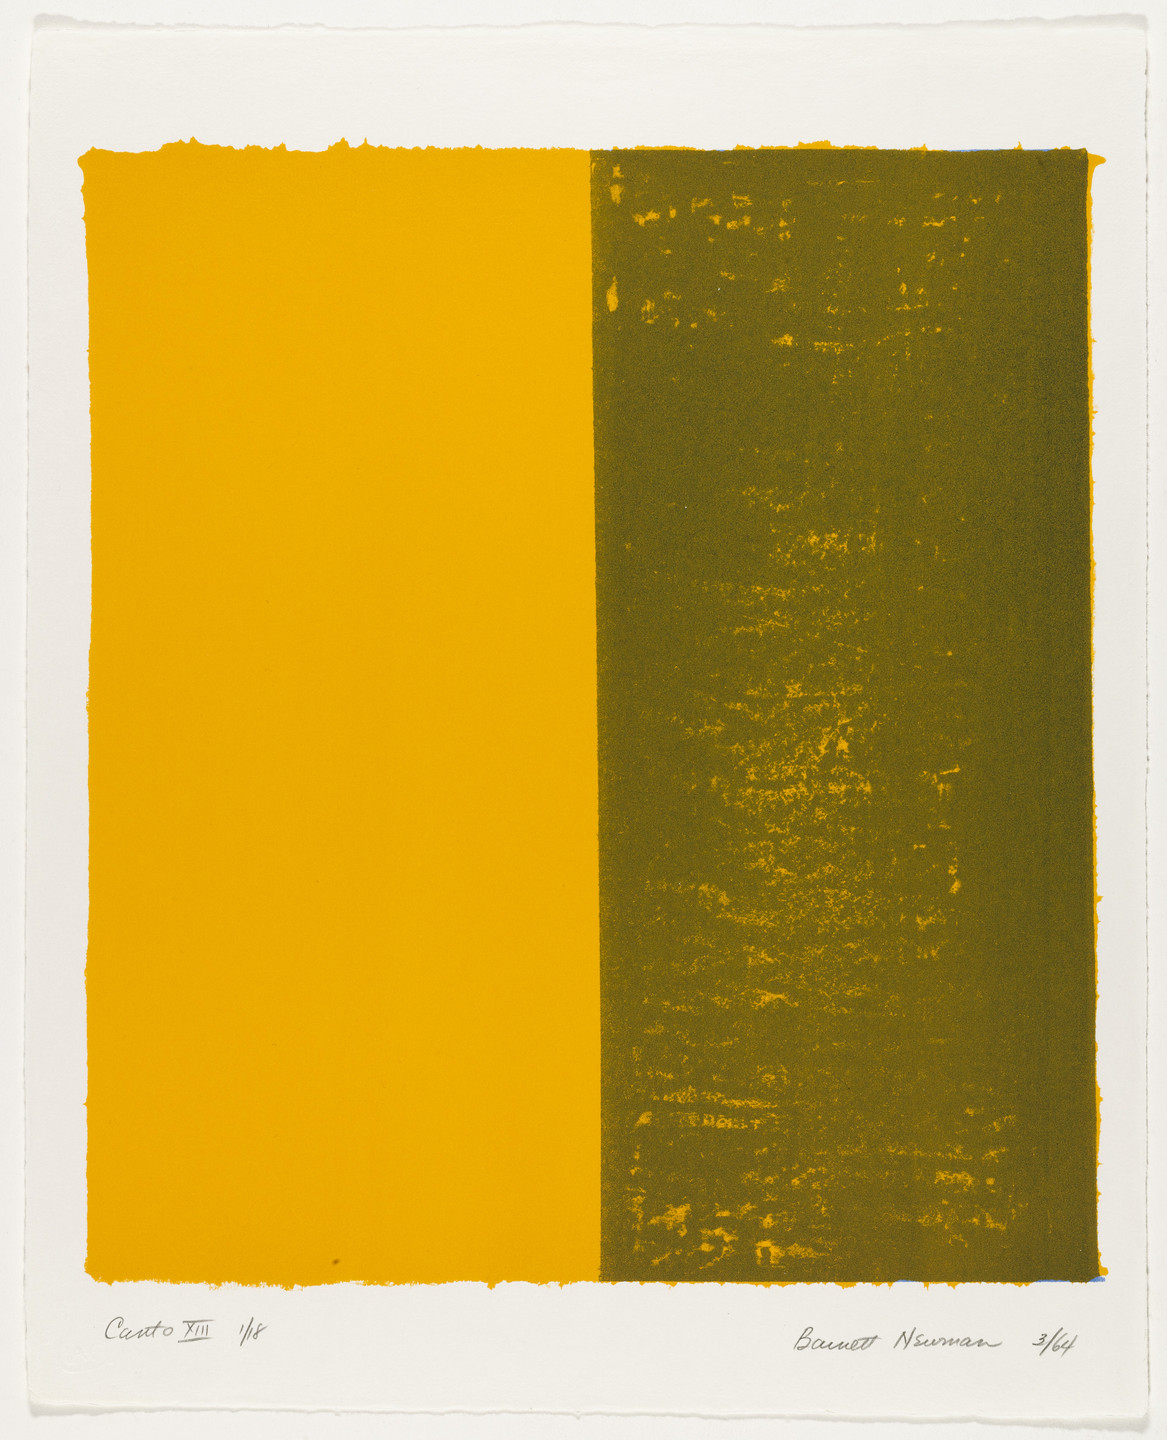 Barnett Newman. Canto XIII from 18 Cantos. 1964